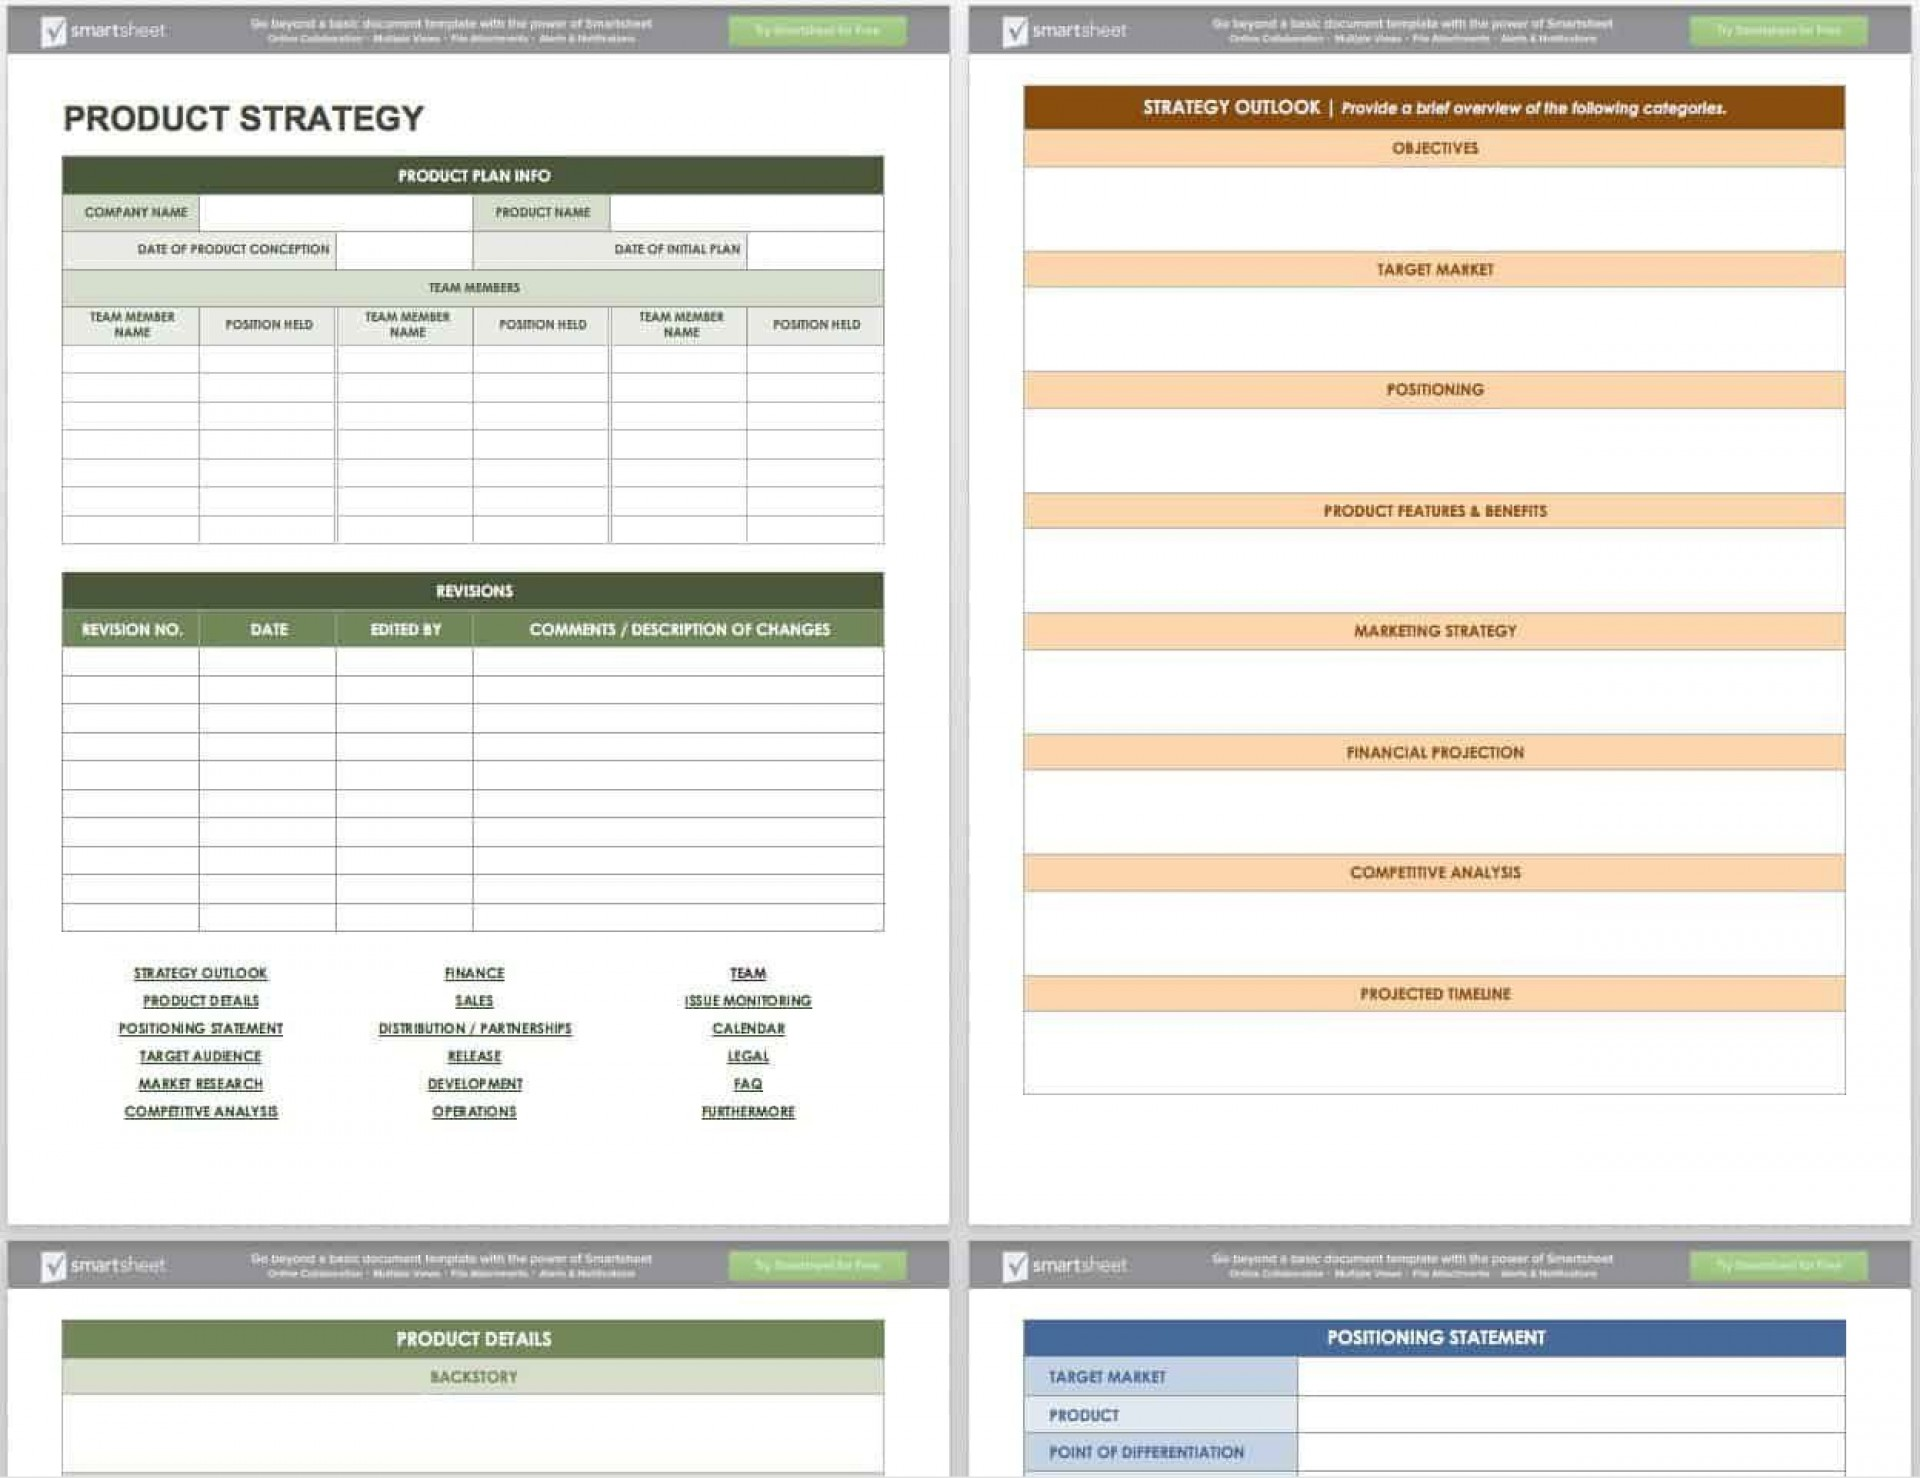 006 Fascinating Product Launch Plan Template Free Inspiration  Powerpoint Ppt Excel1920